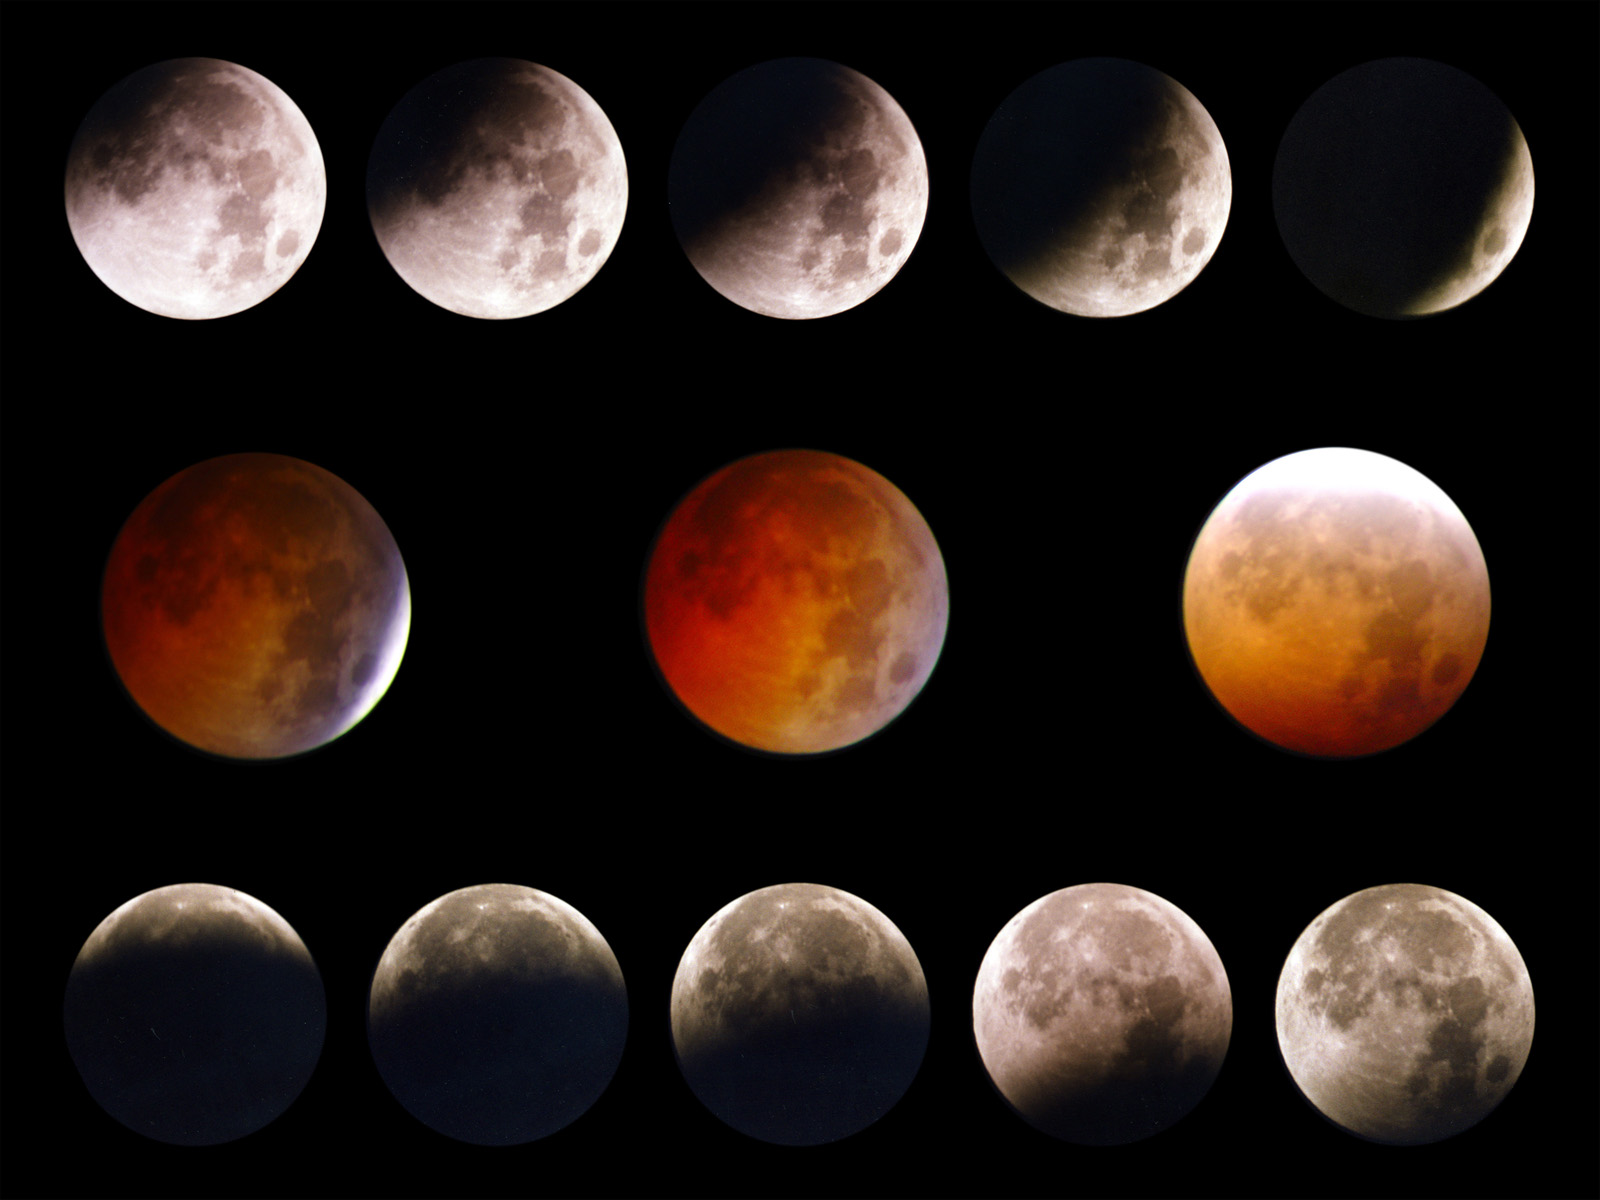 281004_moon_eclipse